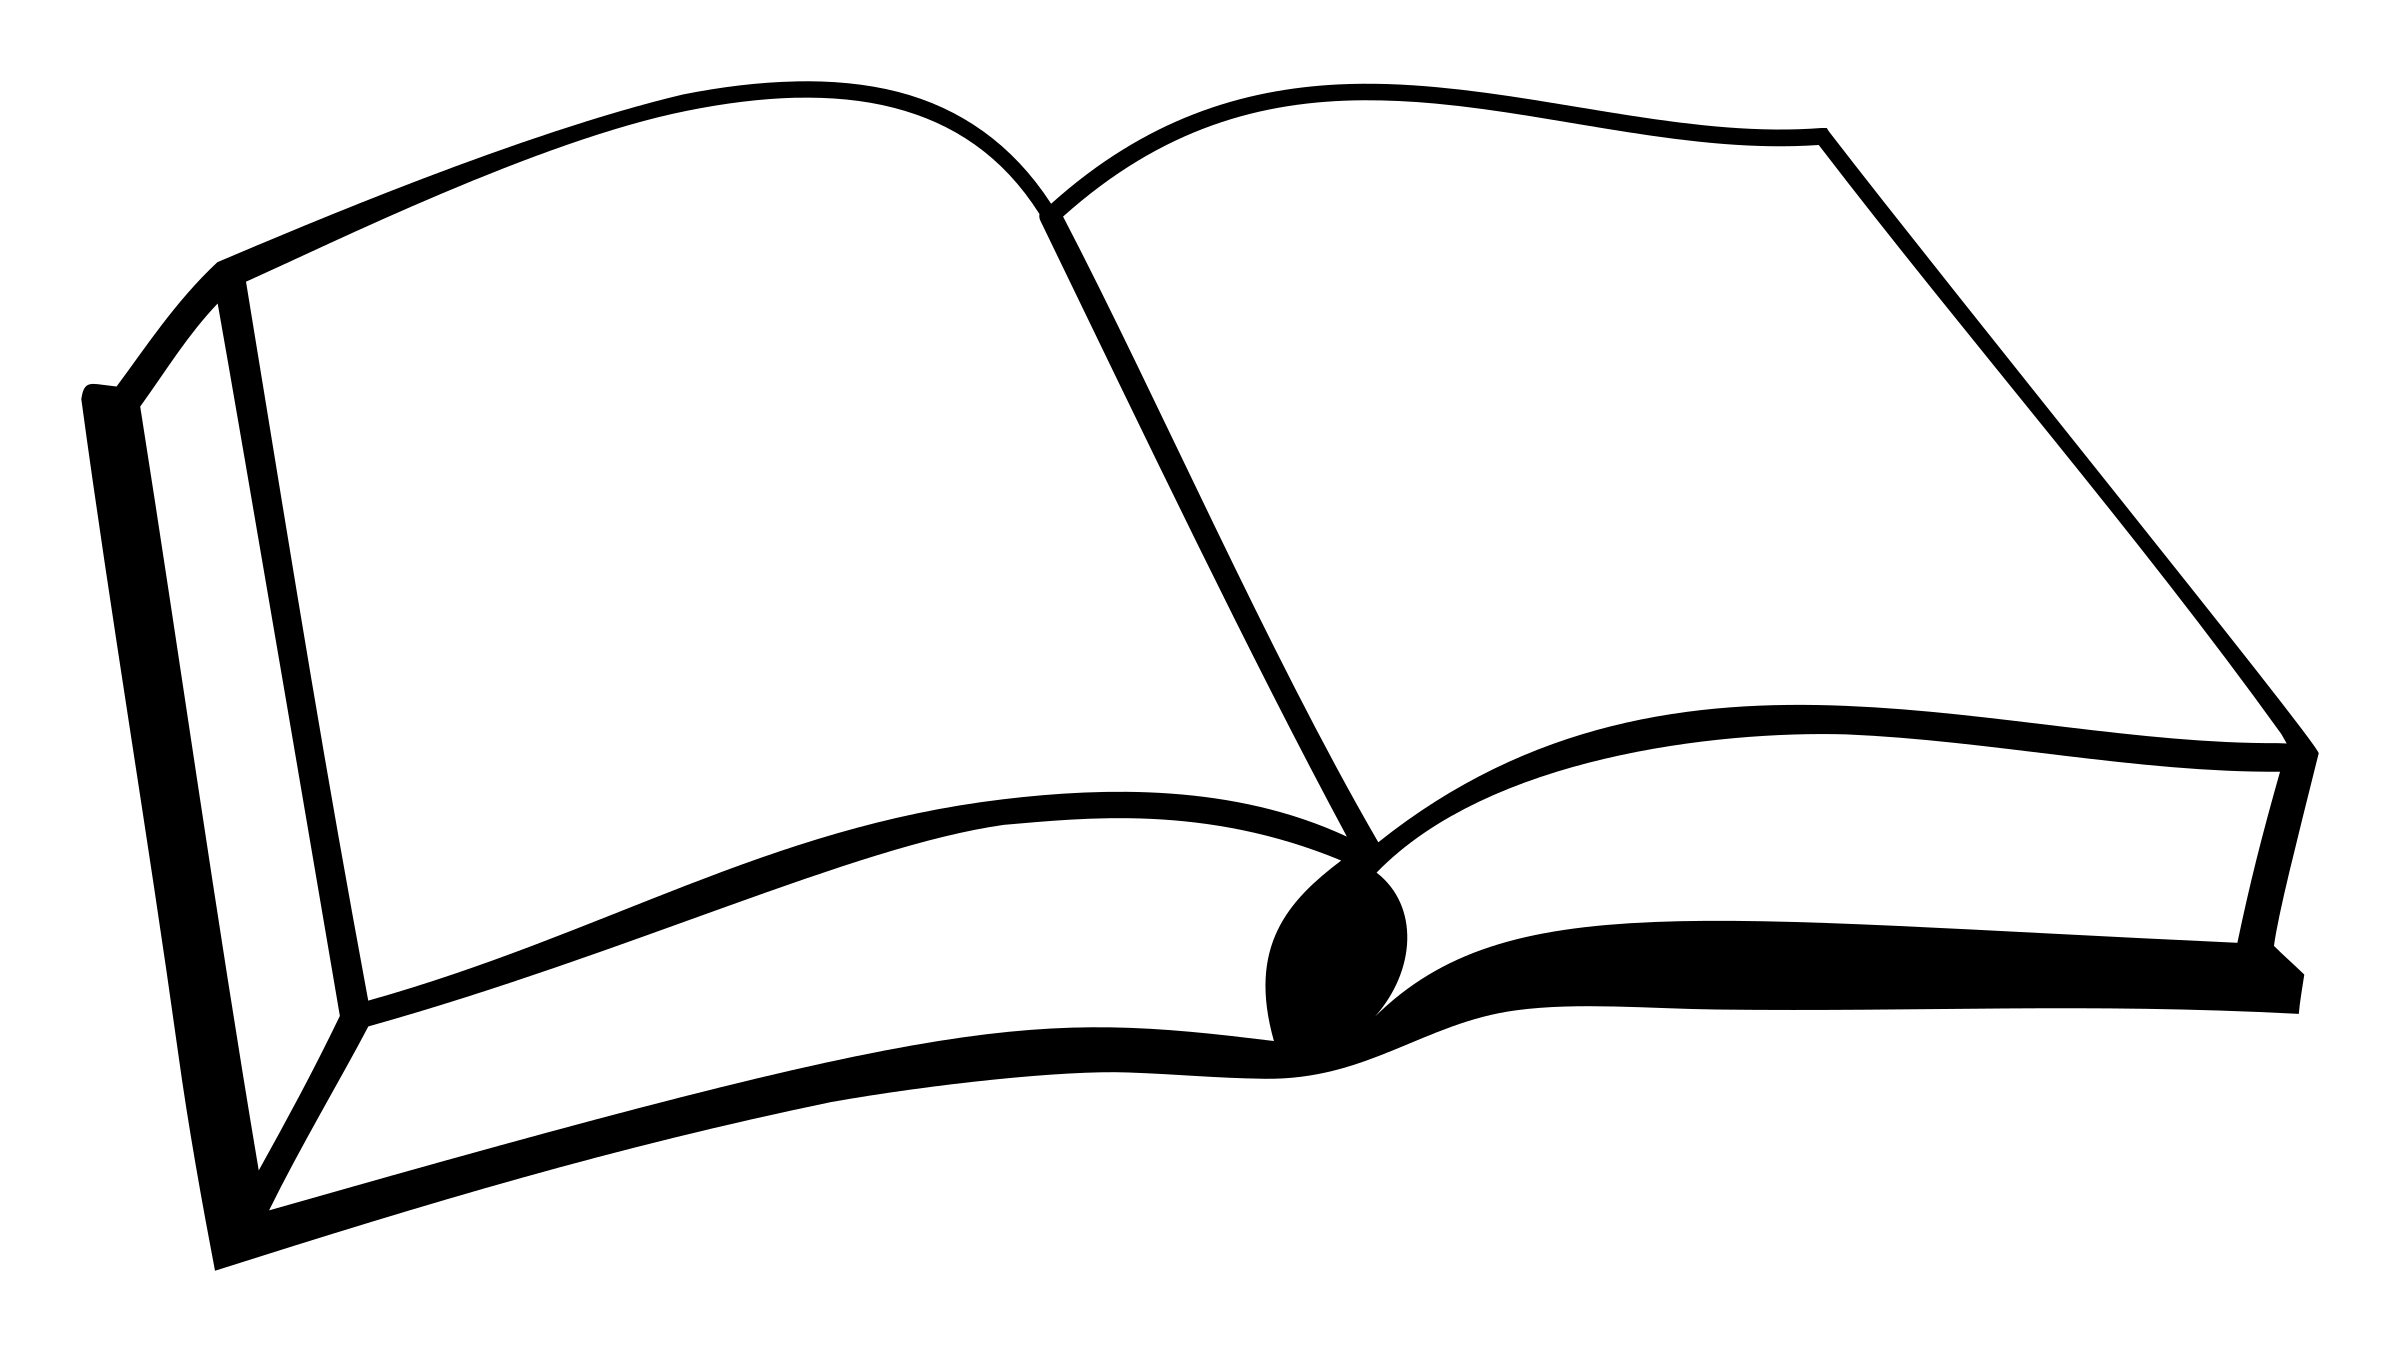 Big clipart open book. Remixed icons png free